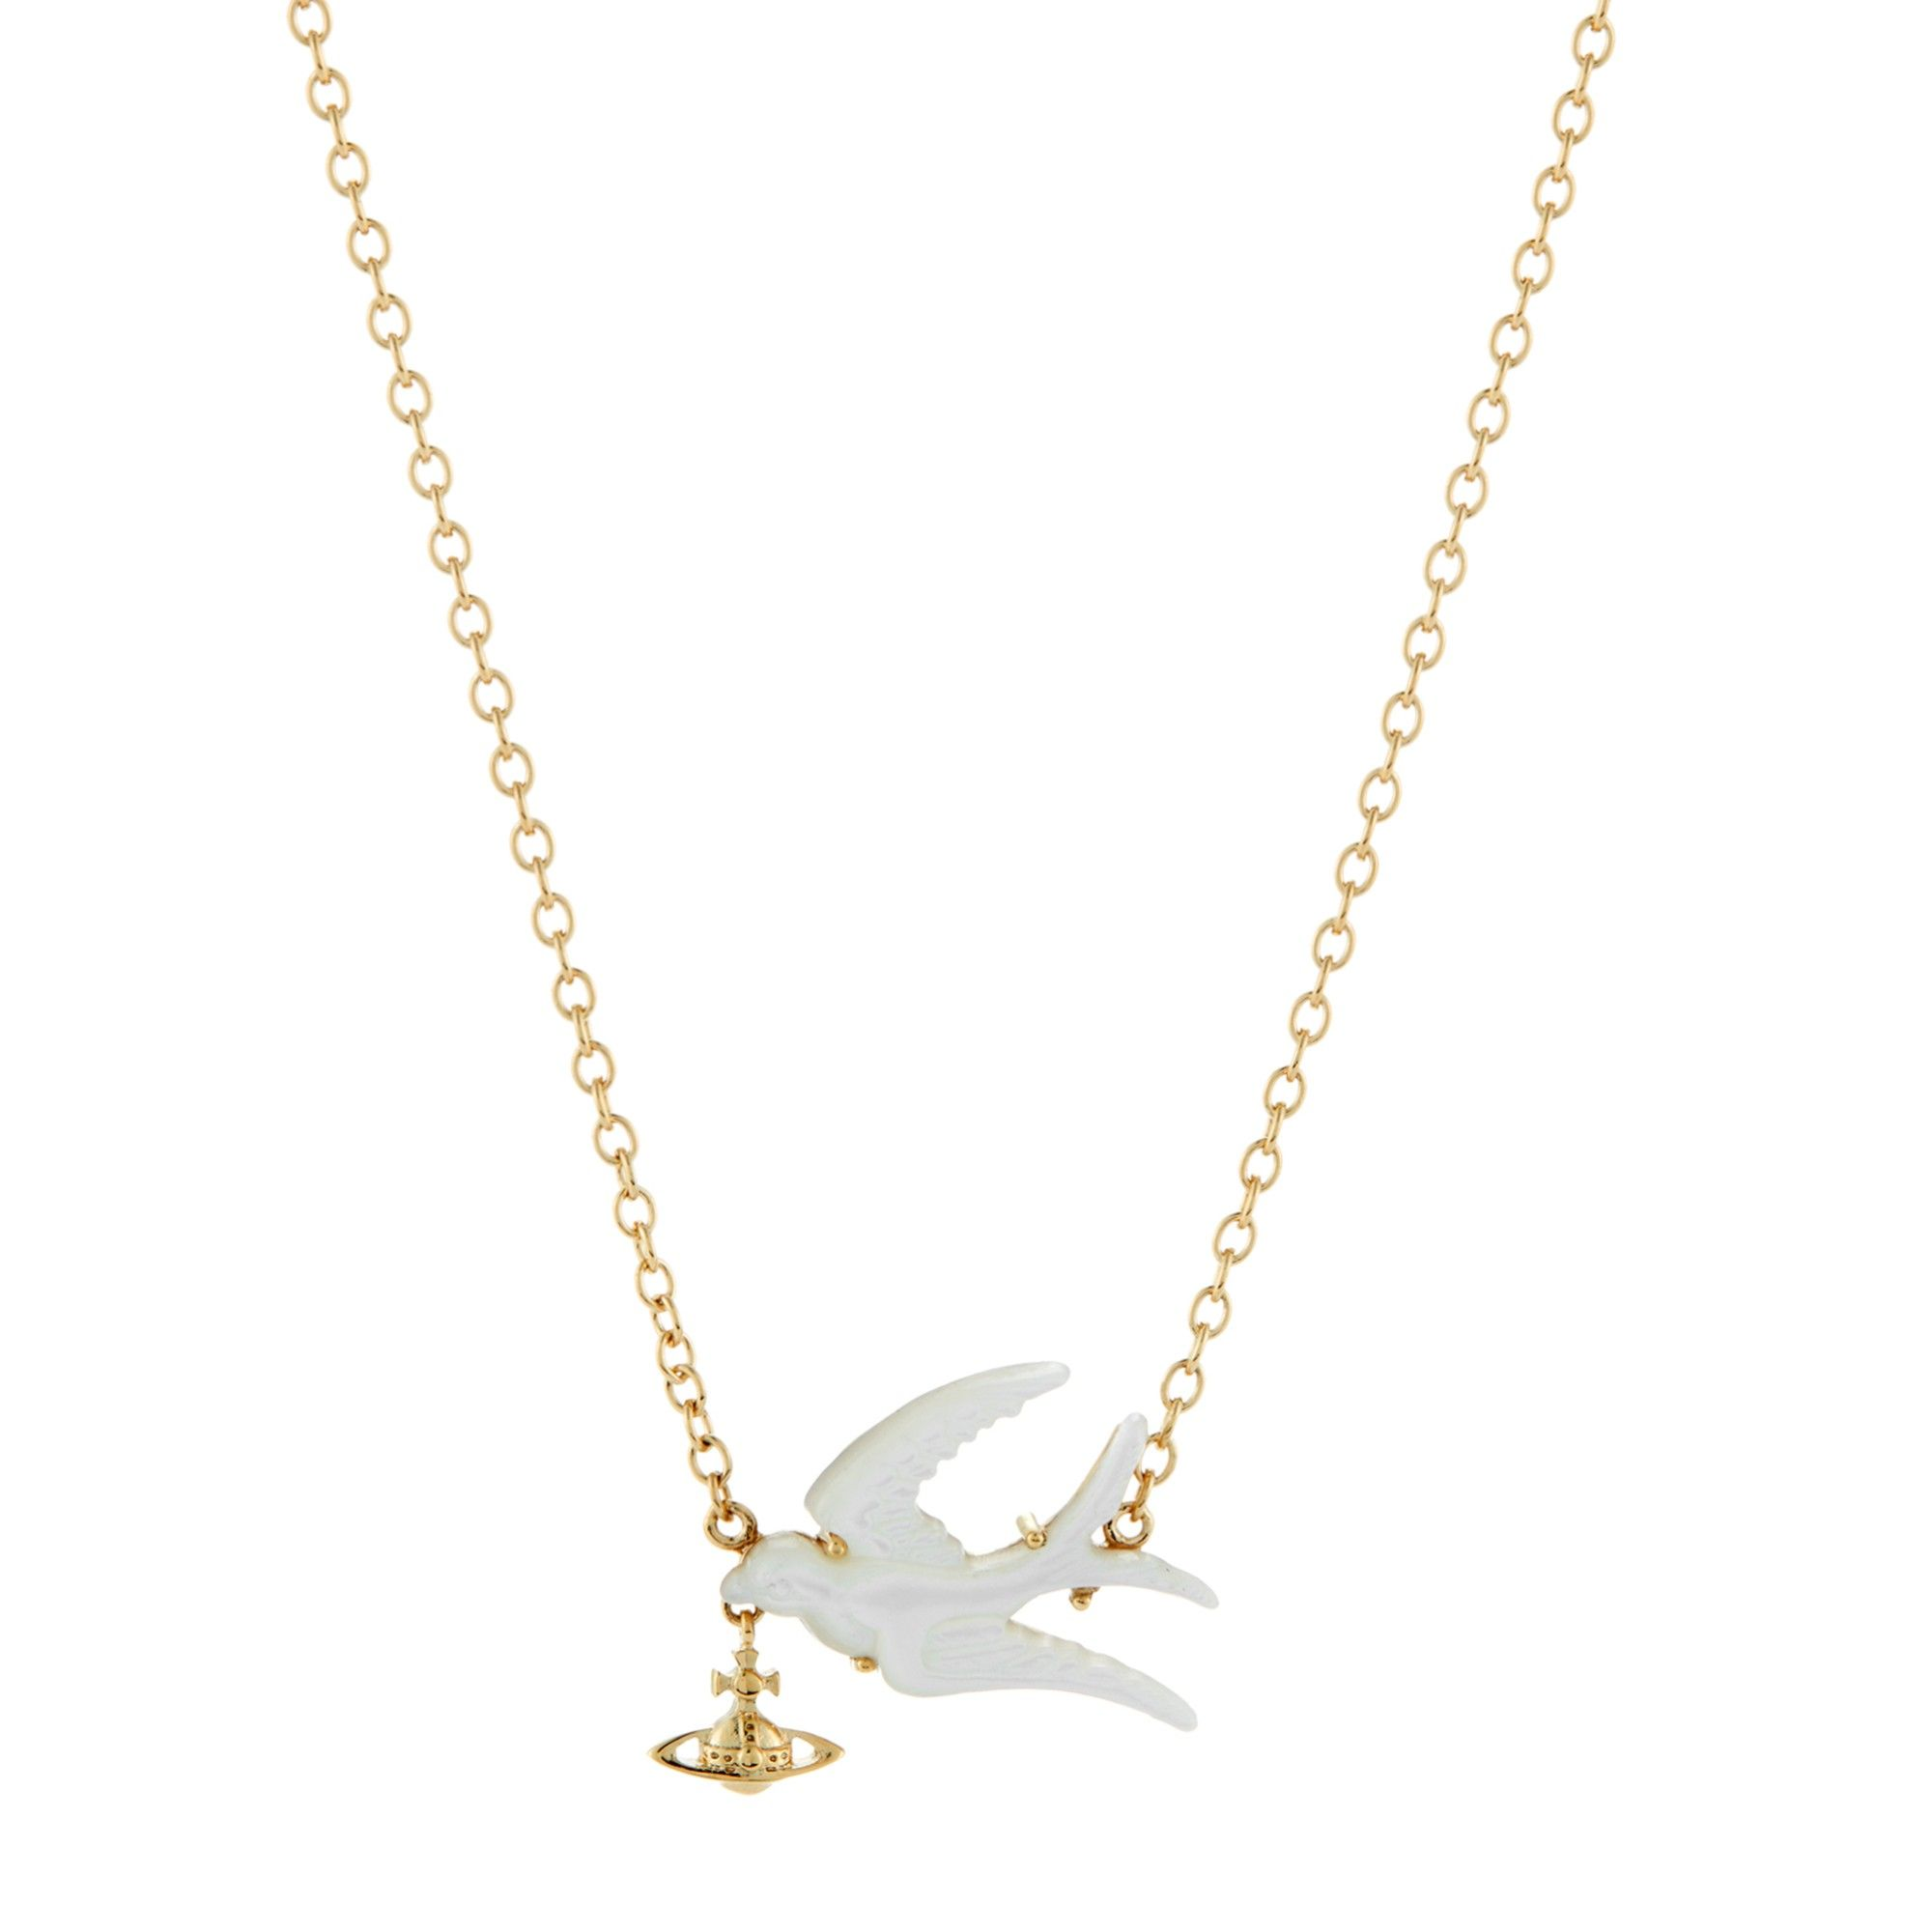 Paloma gold plated steel necklace With matching ring and bracelet